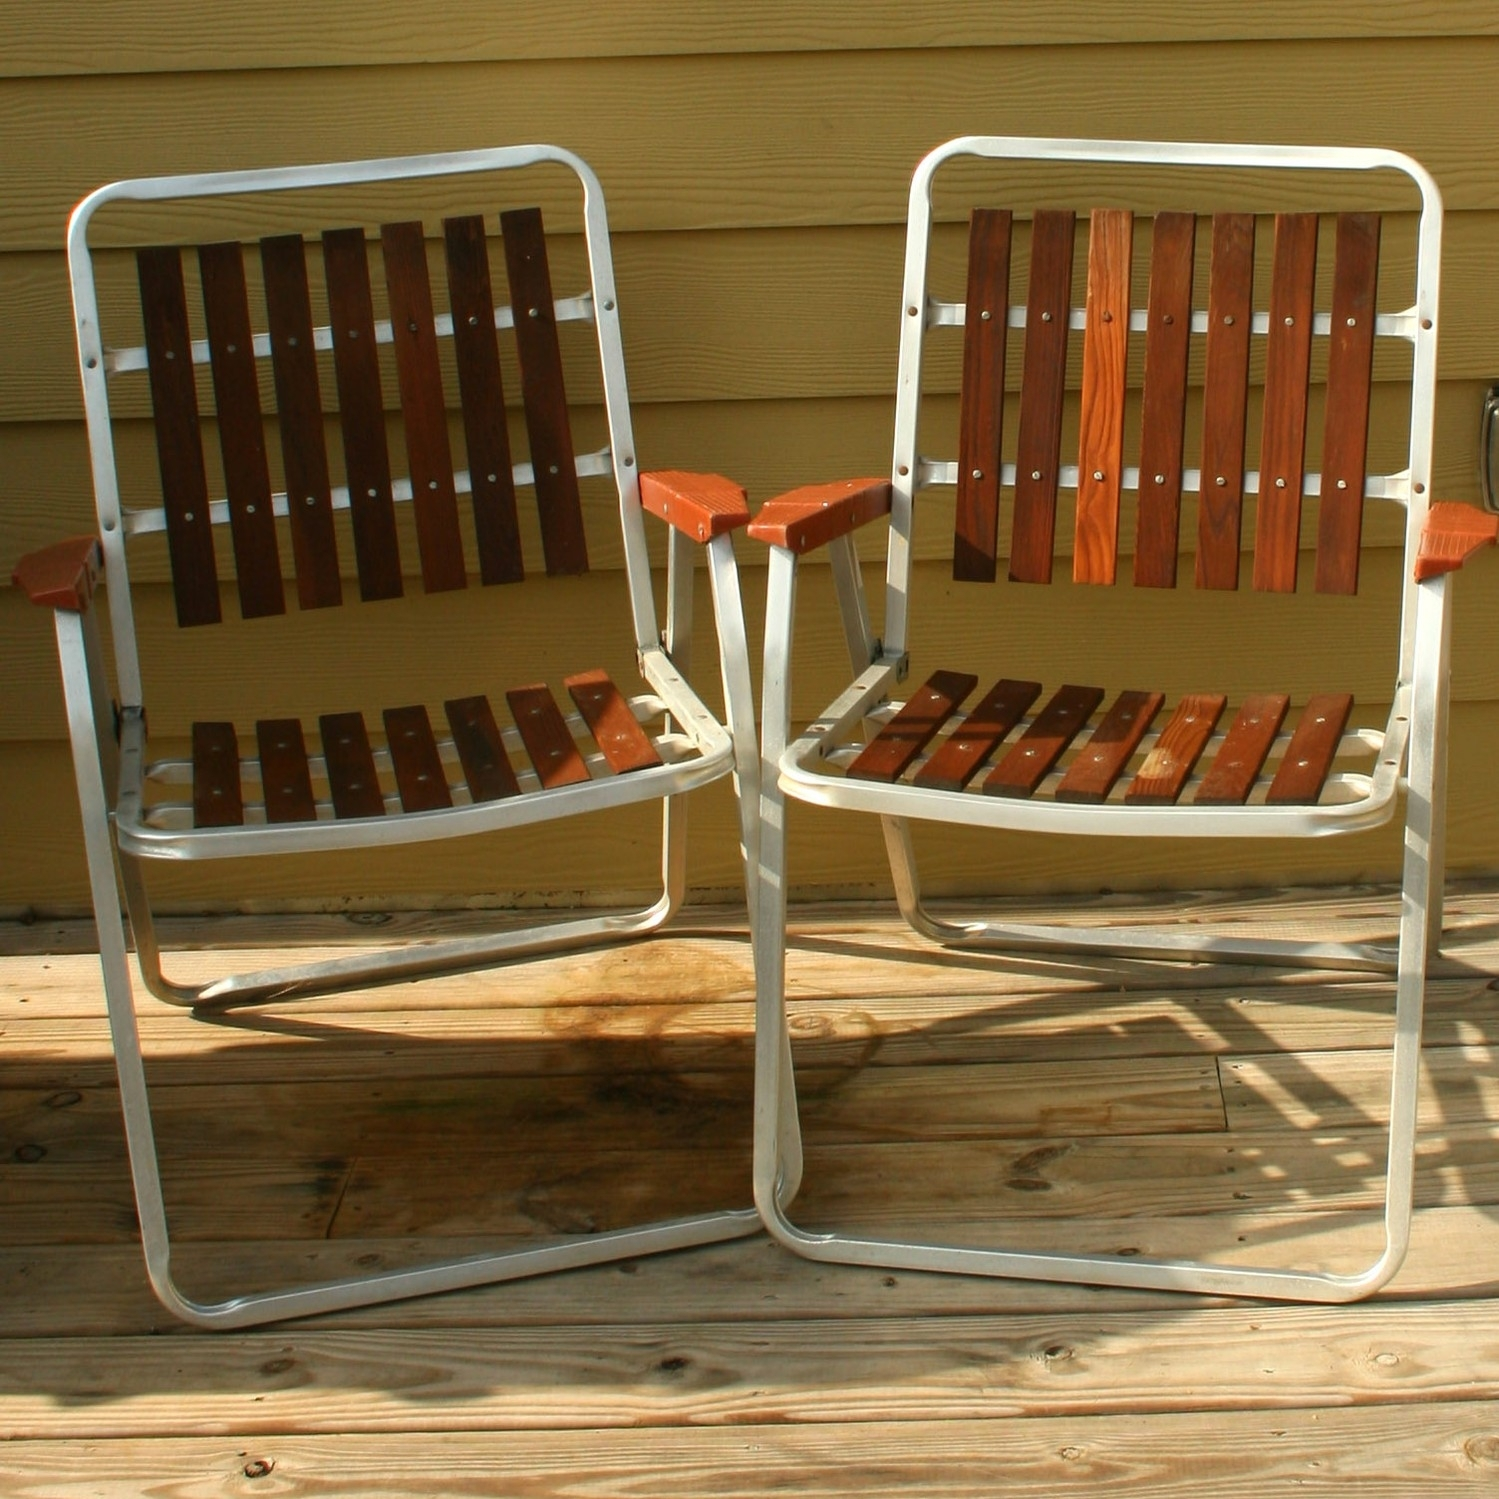 Inspiration about Rare Gardenline Folding Rocking Chair Photo Ideas Innovative Patio Inside Retro Outdoor Rocking Chairs (#11 of 15)